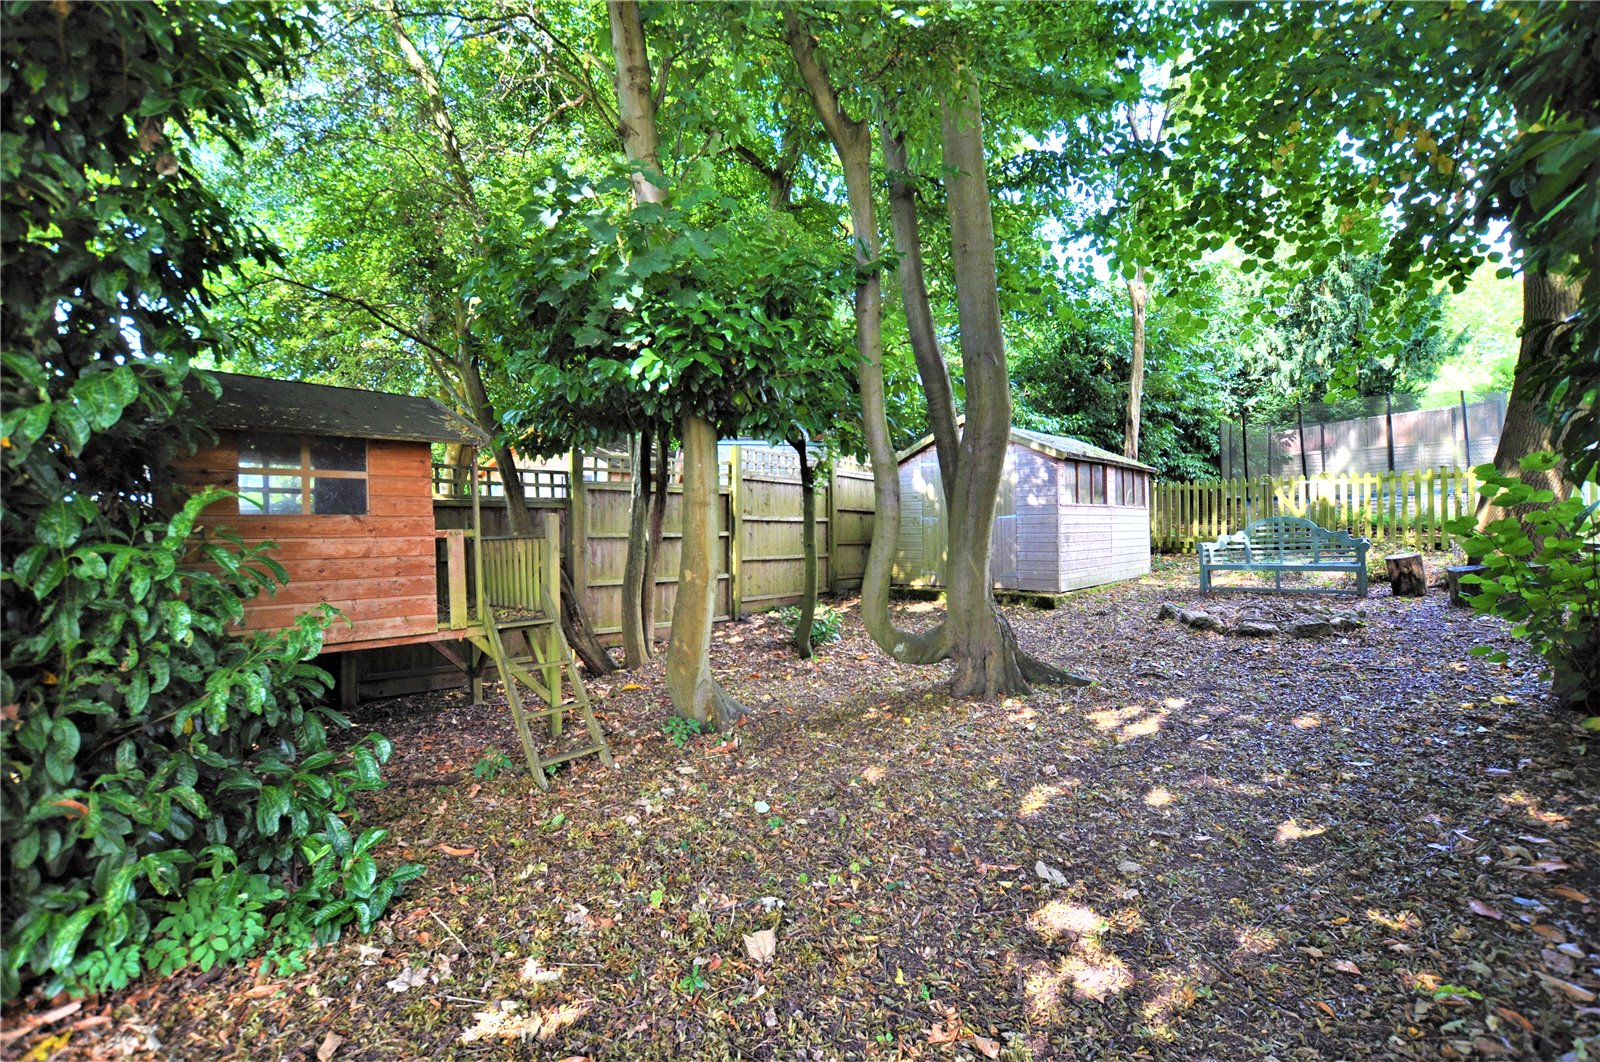 4 bed house for sale in Stanmore, HA7 3AZ  - Property Image 12